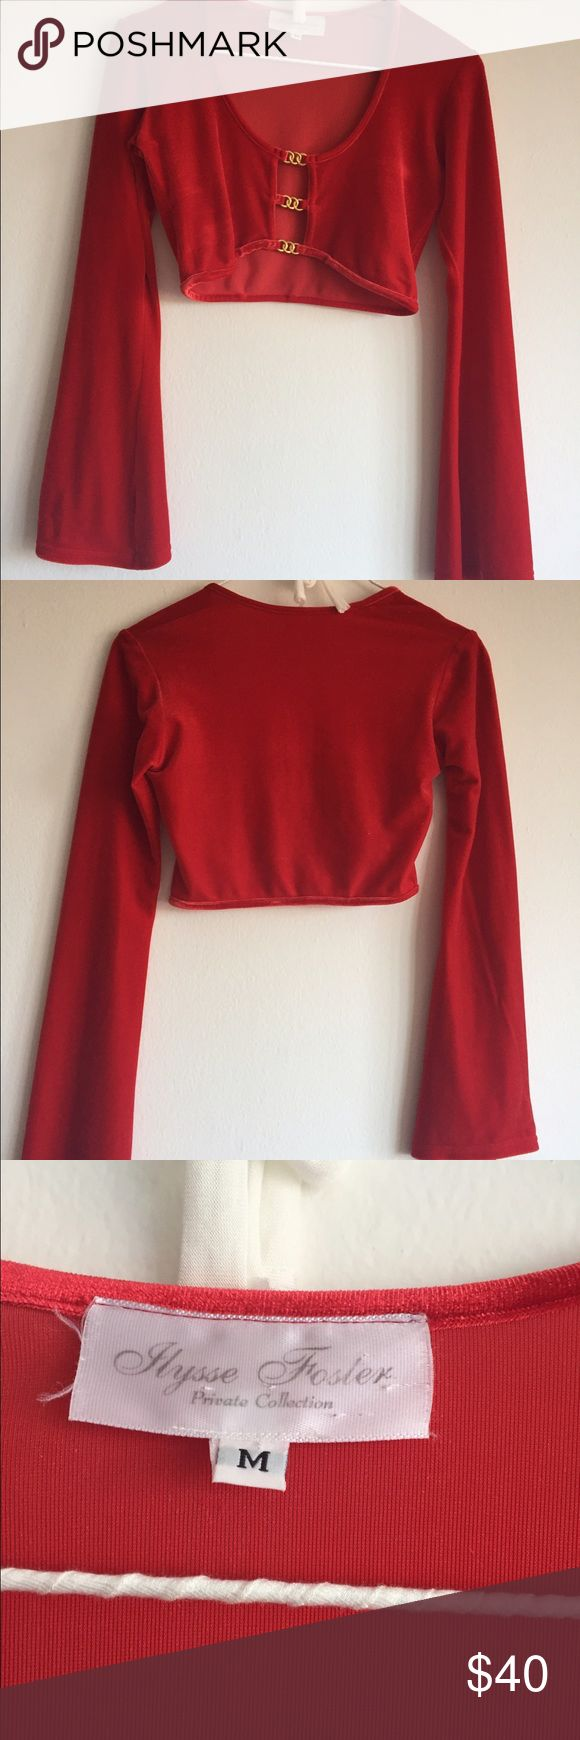 Red long sleeve vintage crop top Amazing throw back. Three gold circles holding the velvety top together. Such an amazing touch, i love the red and gold 😍😍 fits like a glove but keep in mind very short! The sleeves are amazing! Same/next day shipping, firm price and sorry no trades! Buy two items and get 10% off :) alysse foster Tops Crop Tops